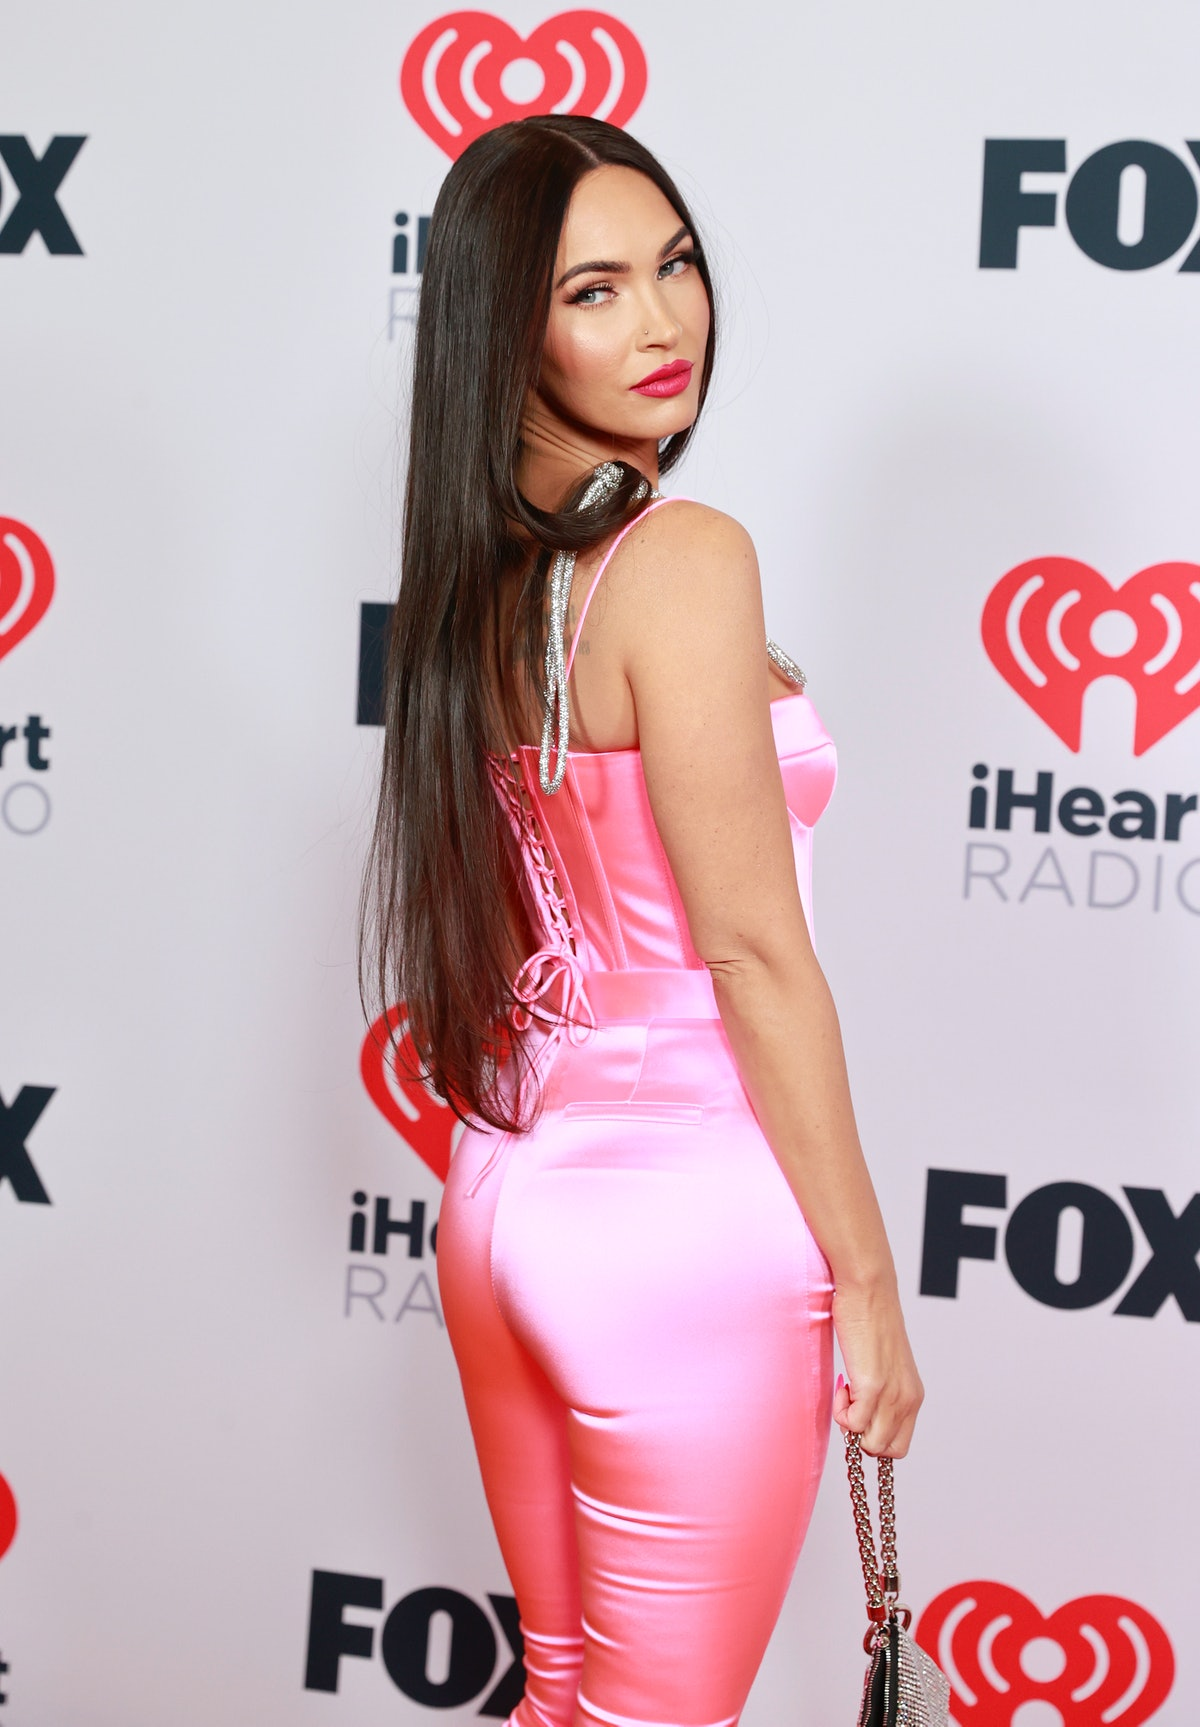 LOS ANGELES, CALIFORNIA - MAY 27: (EDITORIAL USE ONLY) Megan Fox attends the 2021 iHeartRadio Music ...